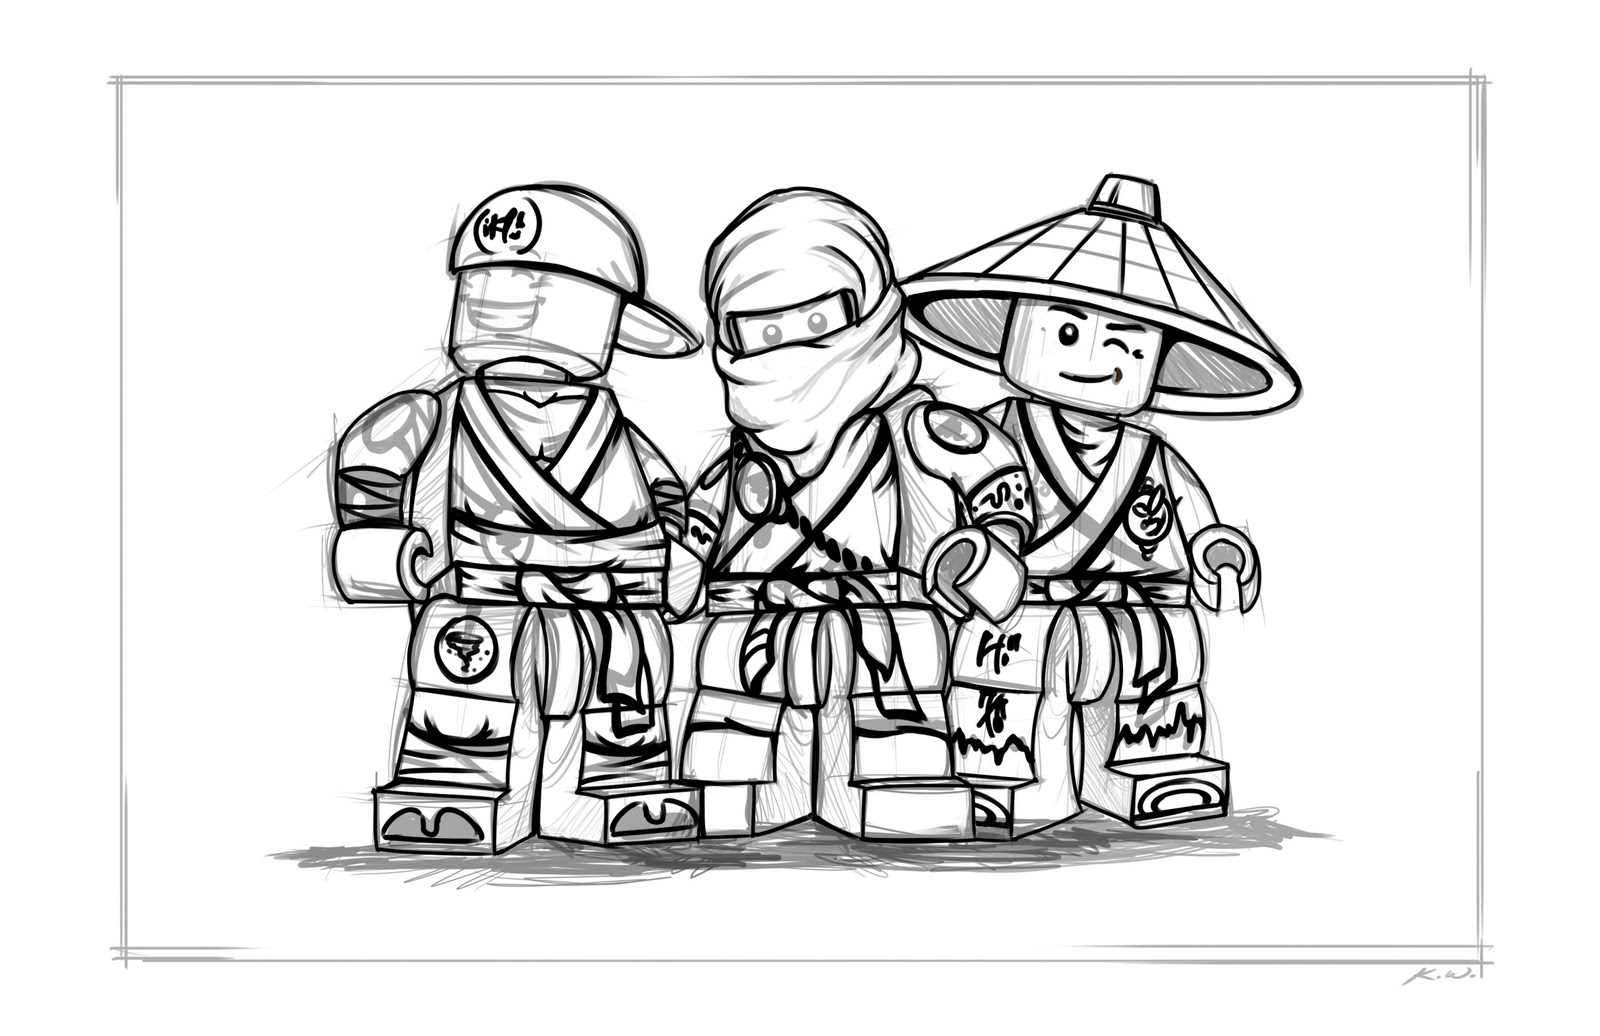 Lego-Ninjago-Coloring-Pages - Coloring Kids